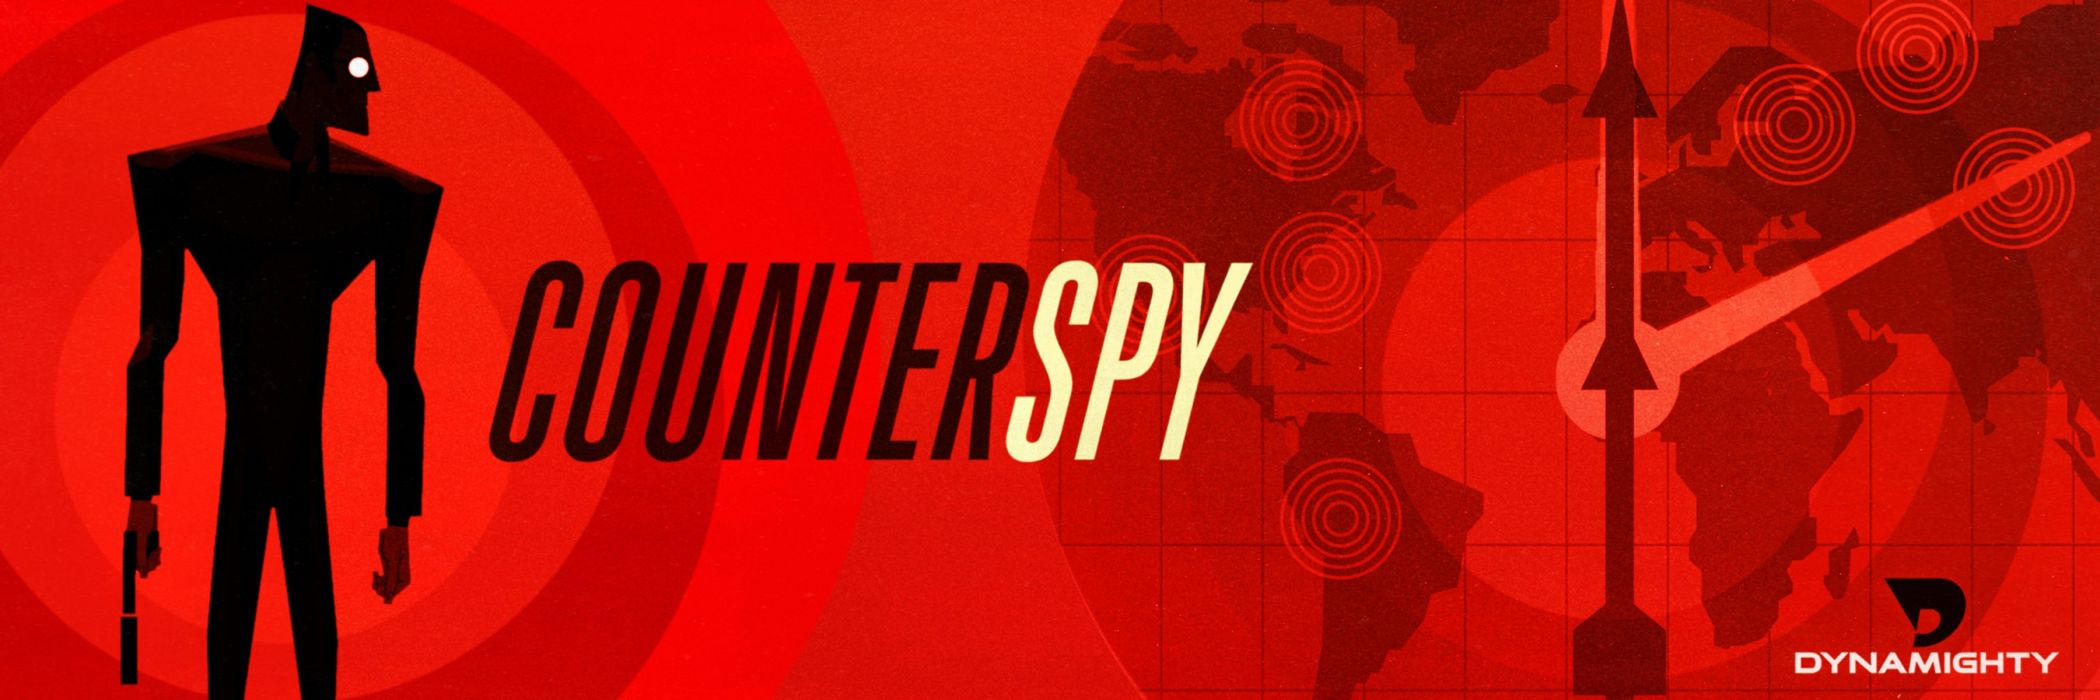 COUNTERSPY action thriller war spy rpg military (14) wallpaper